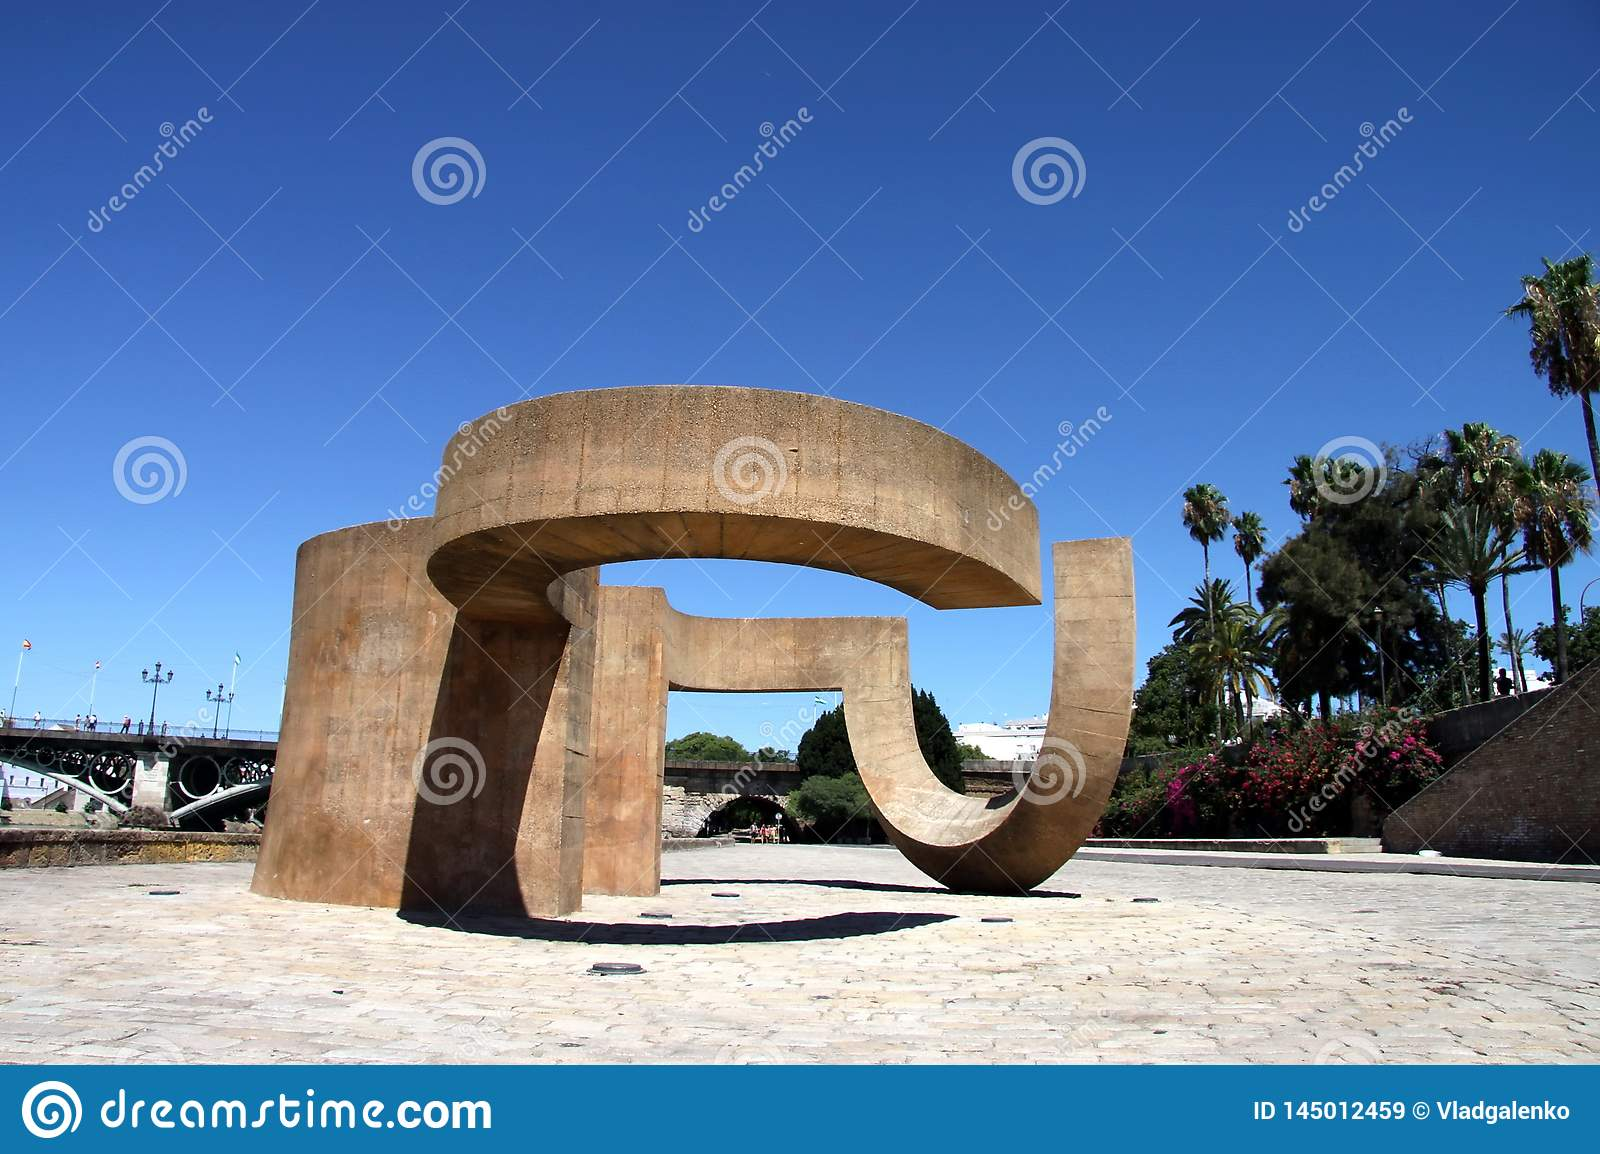 Monument to the Tolerance of Eduardo Chillida next to the river Guadalquivir in the city of Seville.